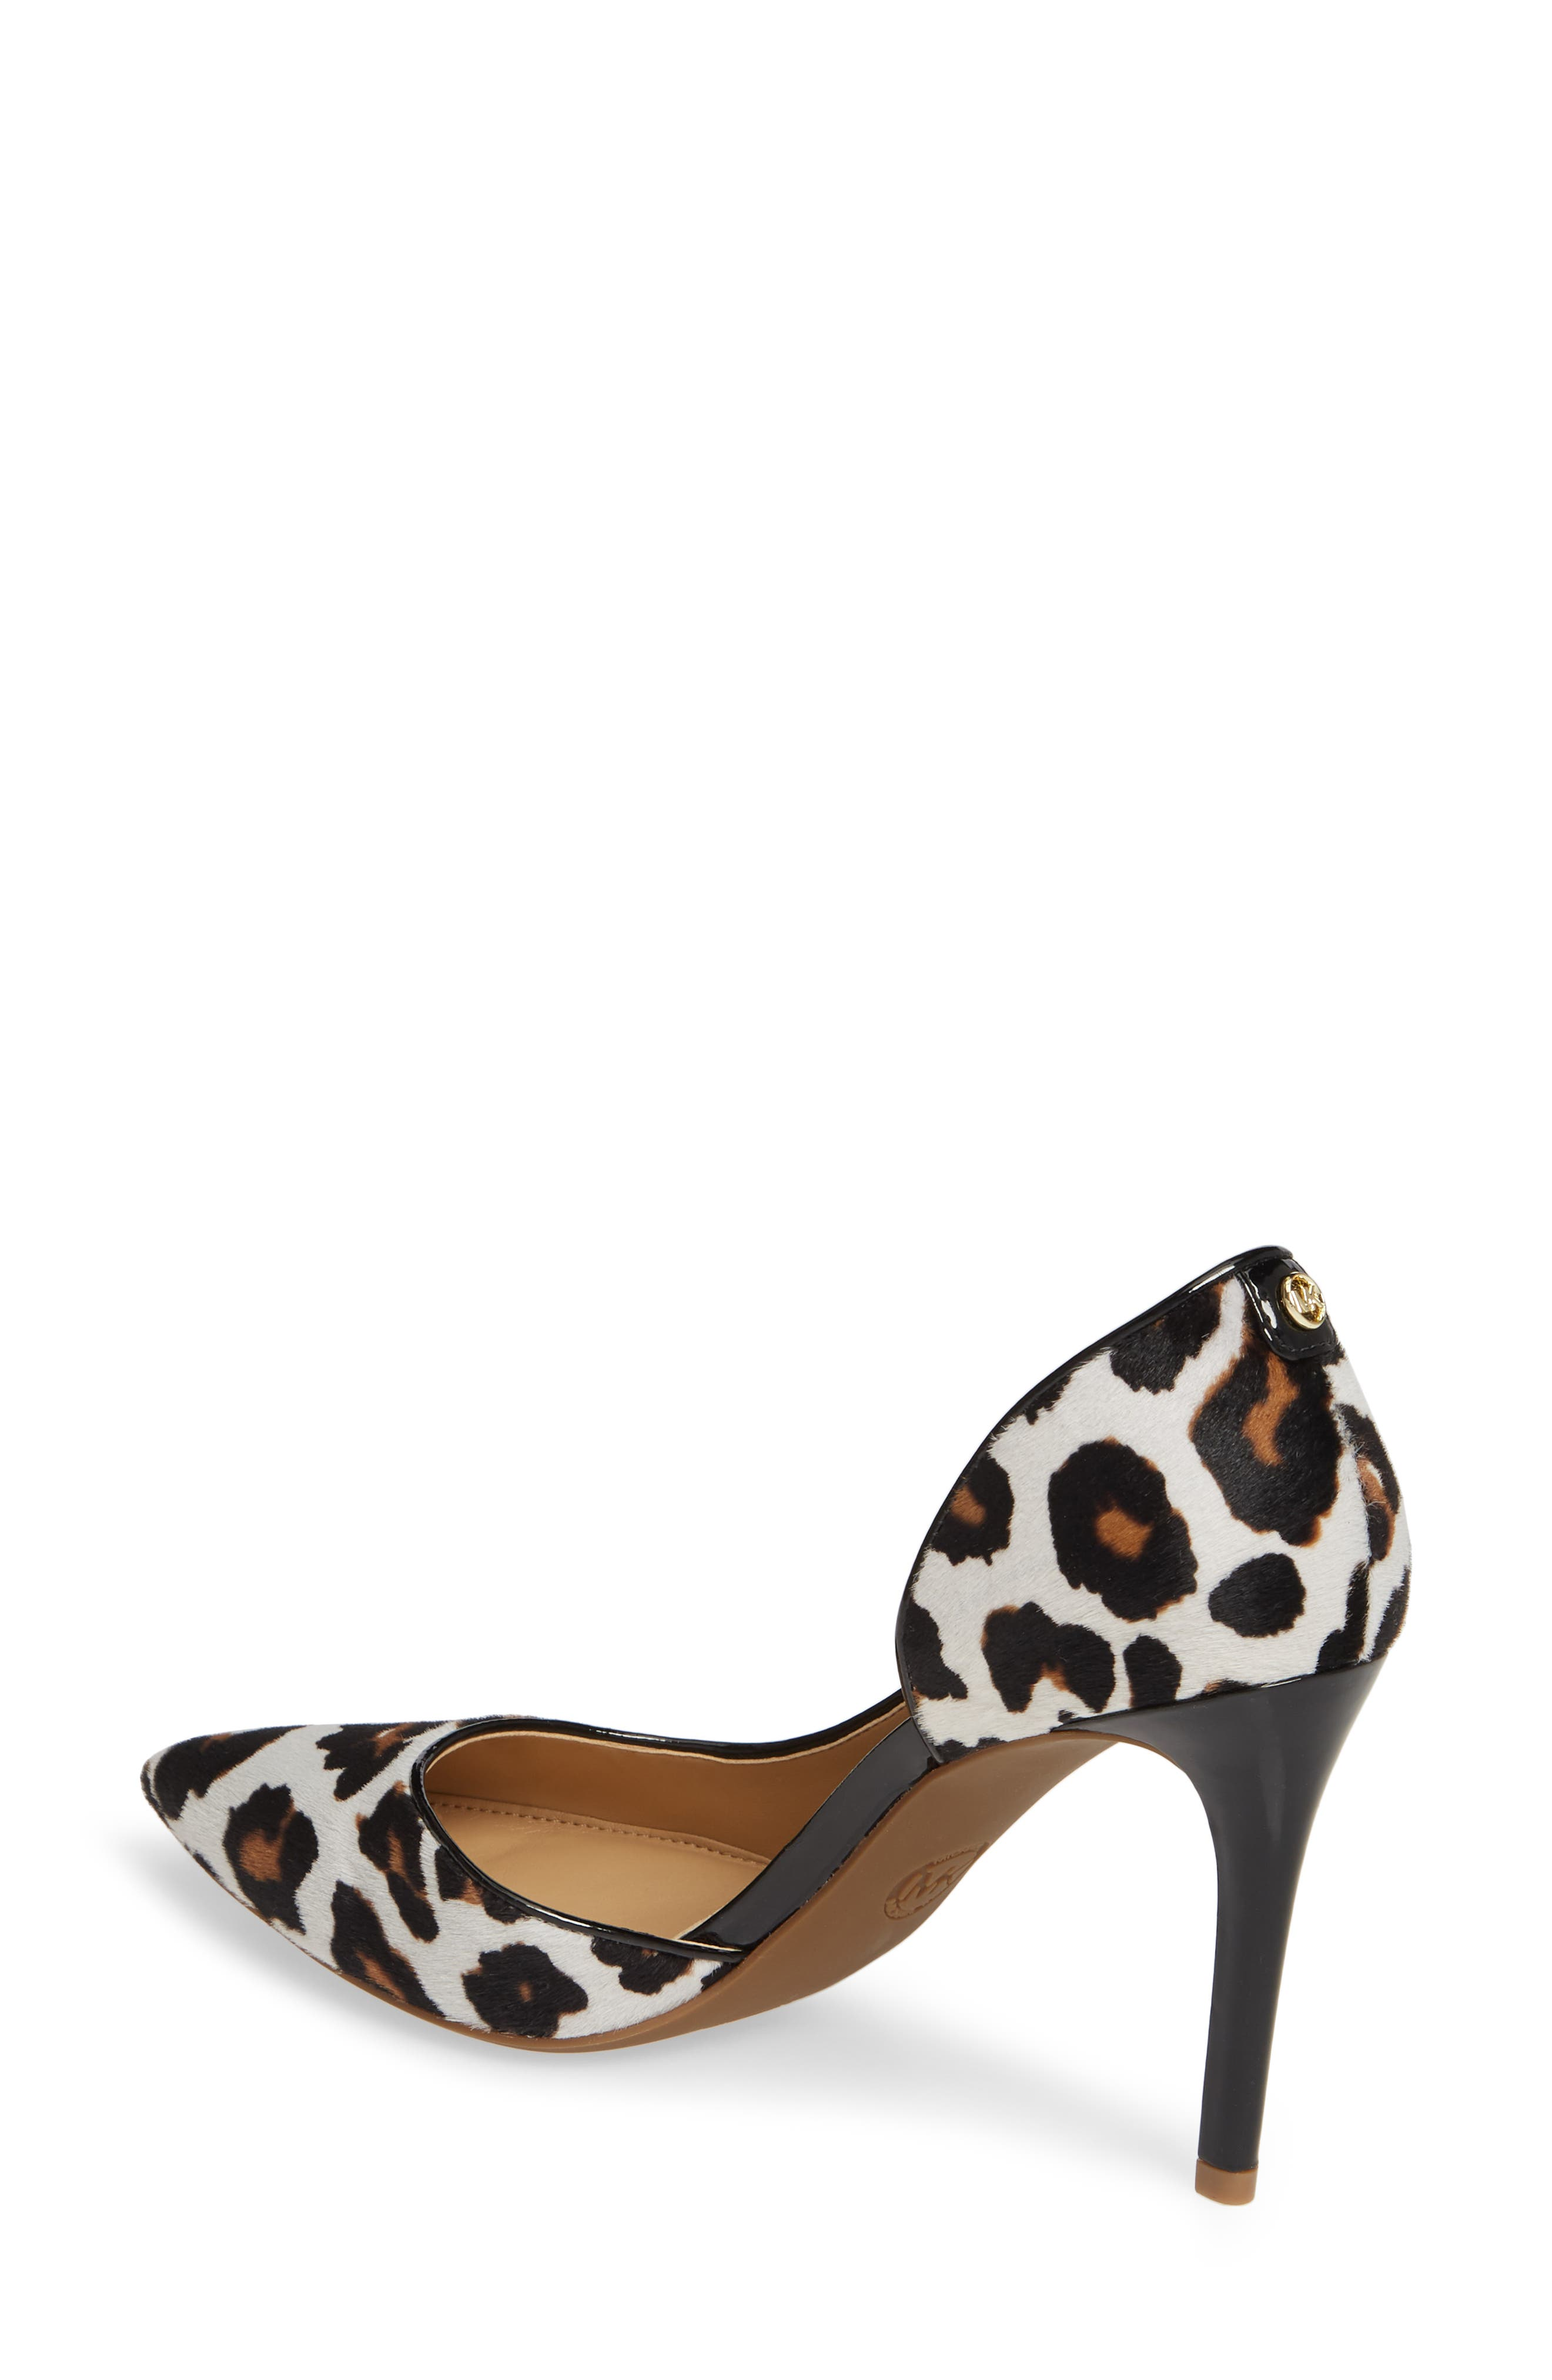 MICHAEL MICHAEL KORS, Lucile Flex Pump, Alternate thumbnail 2, color, 203